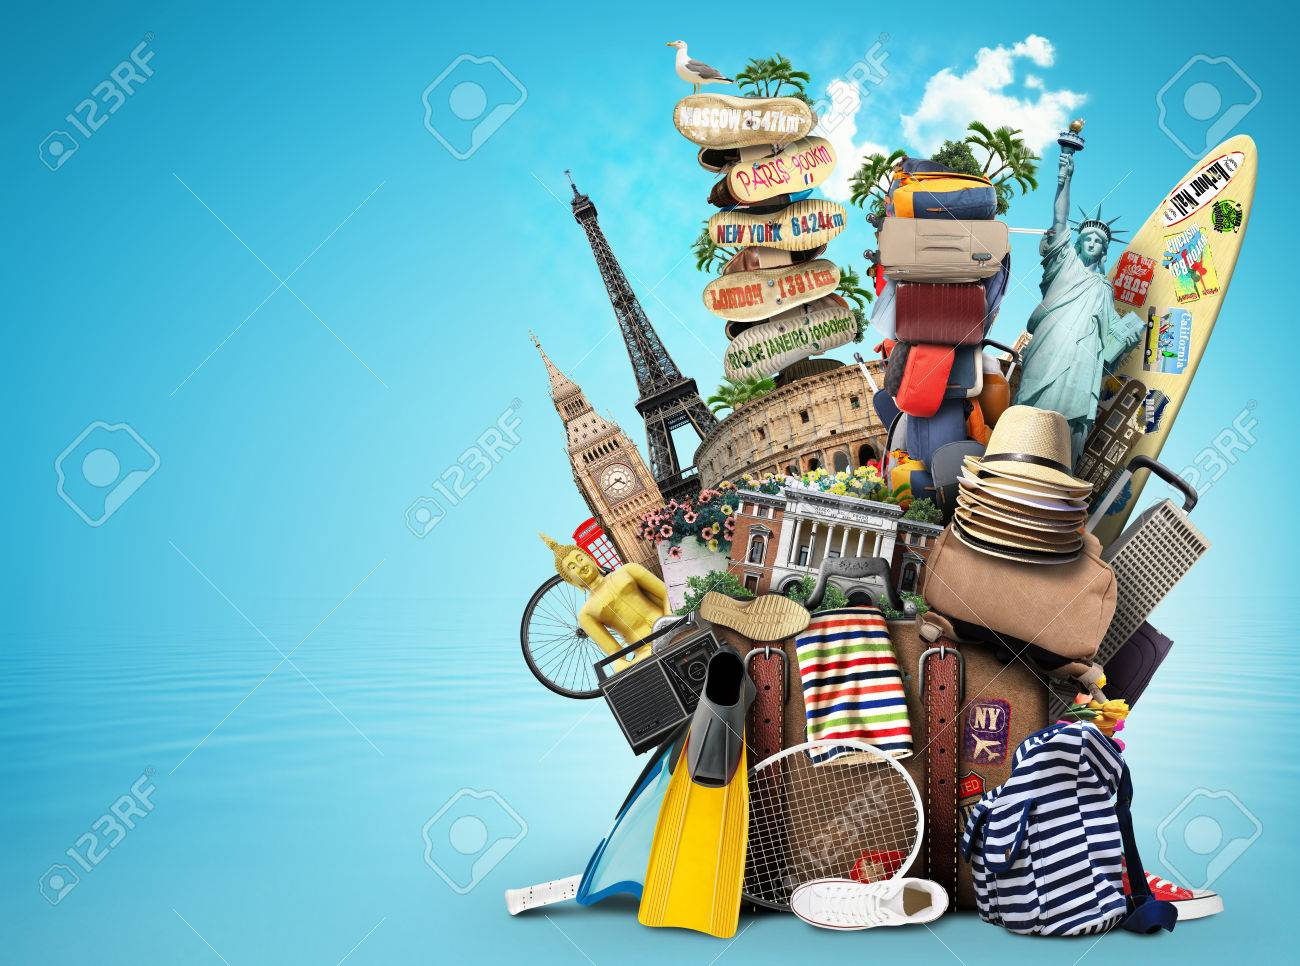 Luggage, goods for holidays, leisure and travel - 50844637